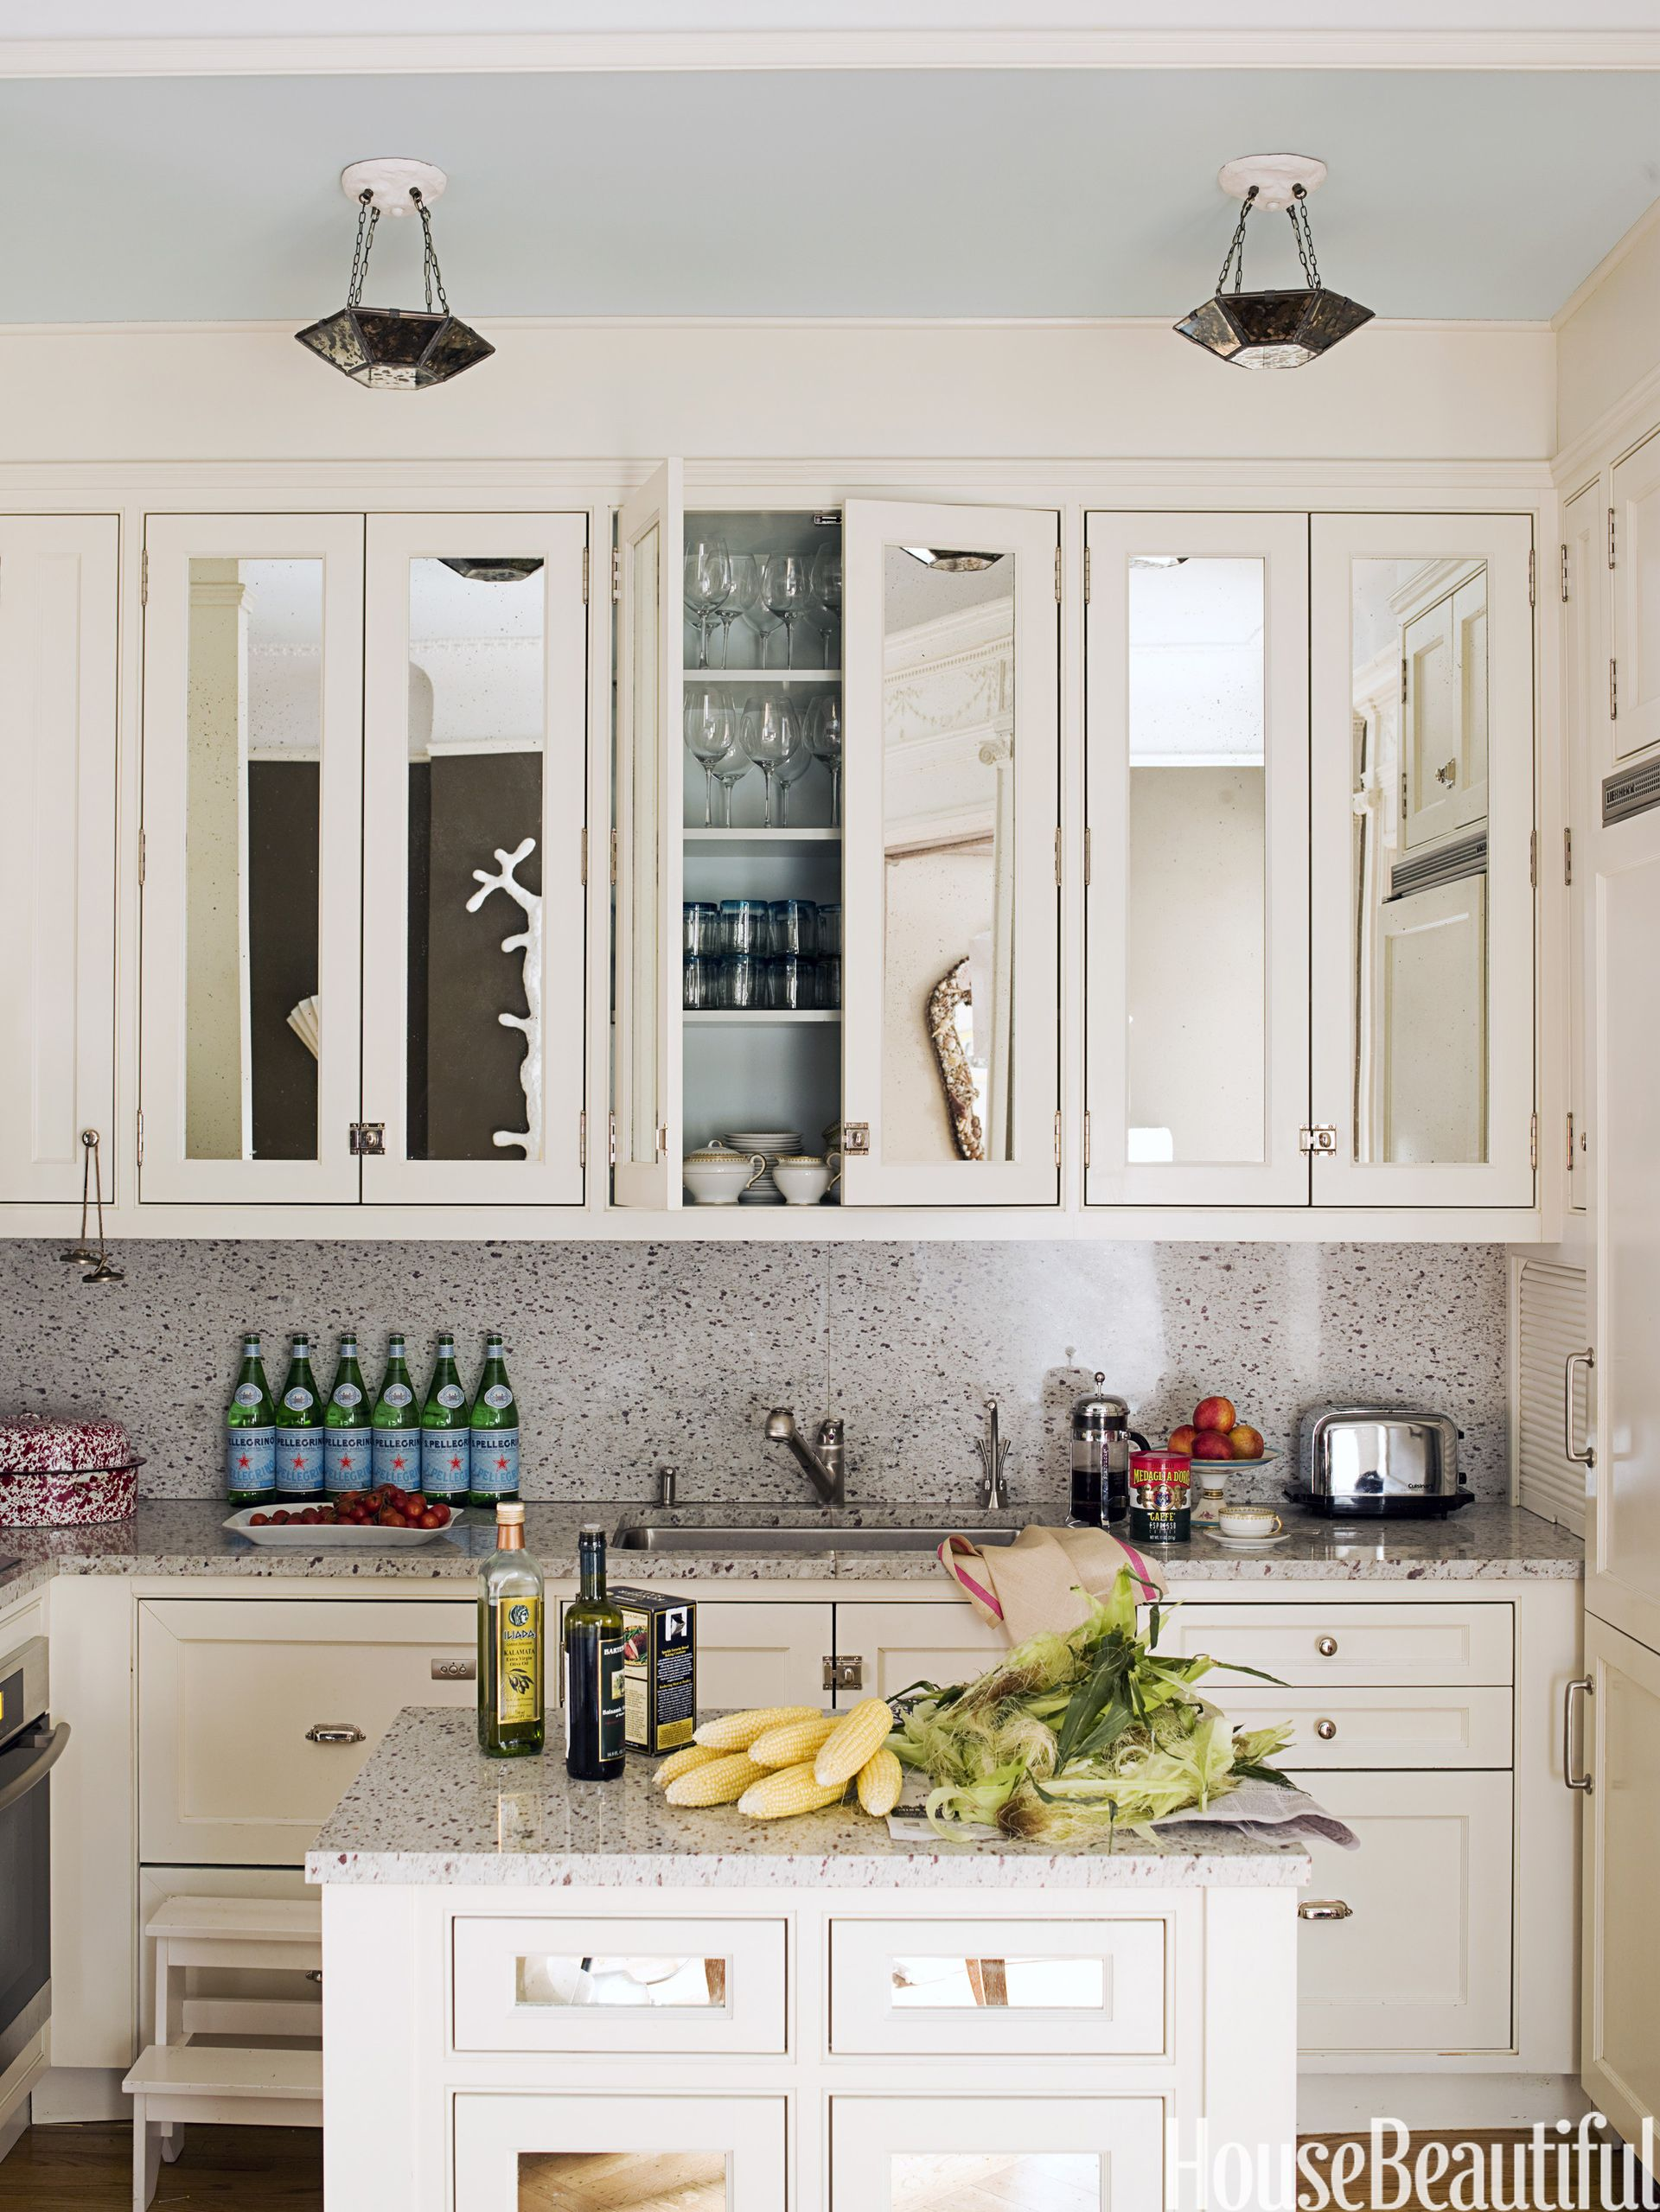 Mirrored Kitchen Cabinet Doors Mirrored Kitchen Cabinets   House Beautiful Pinterest Favorite